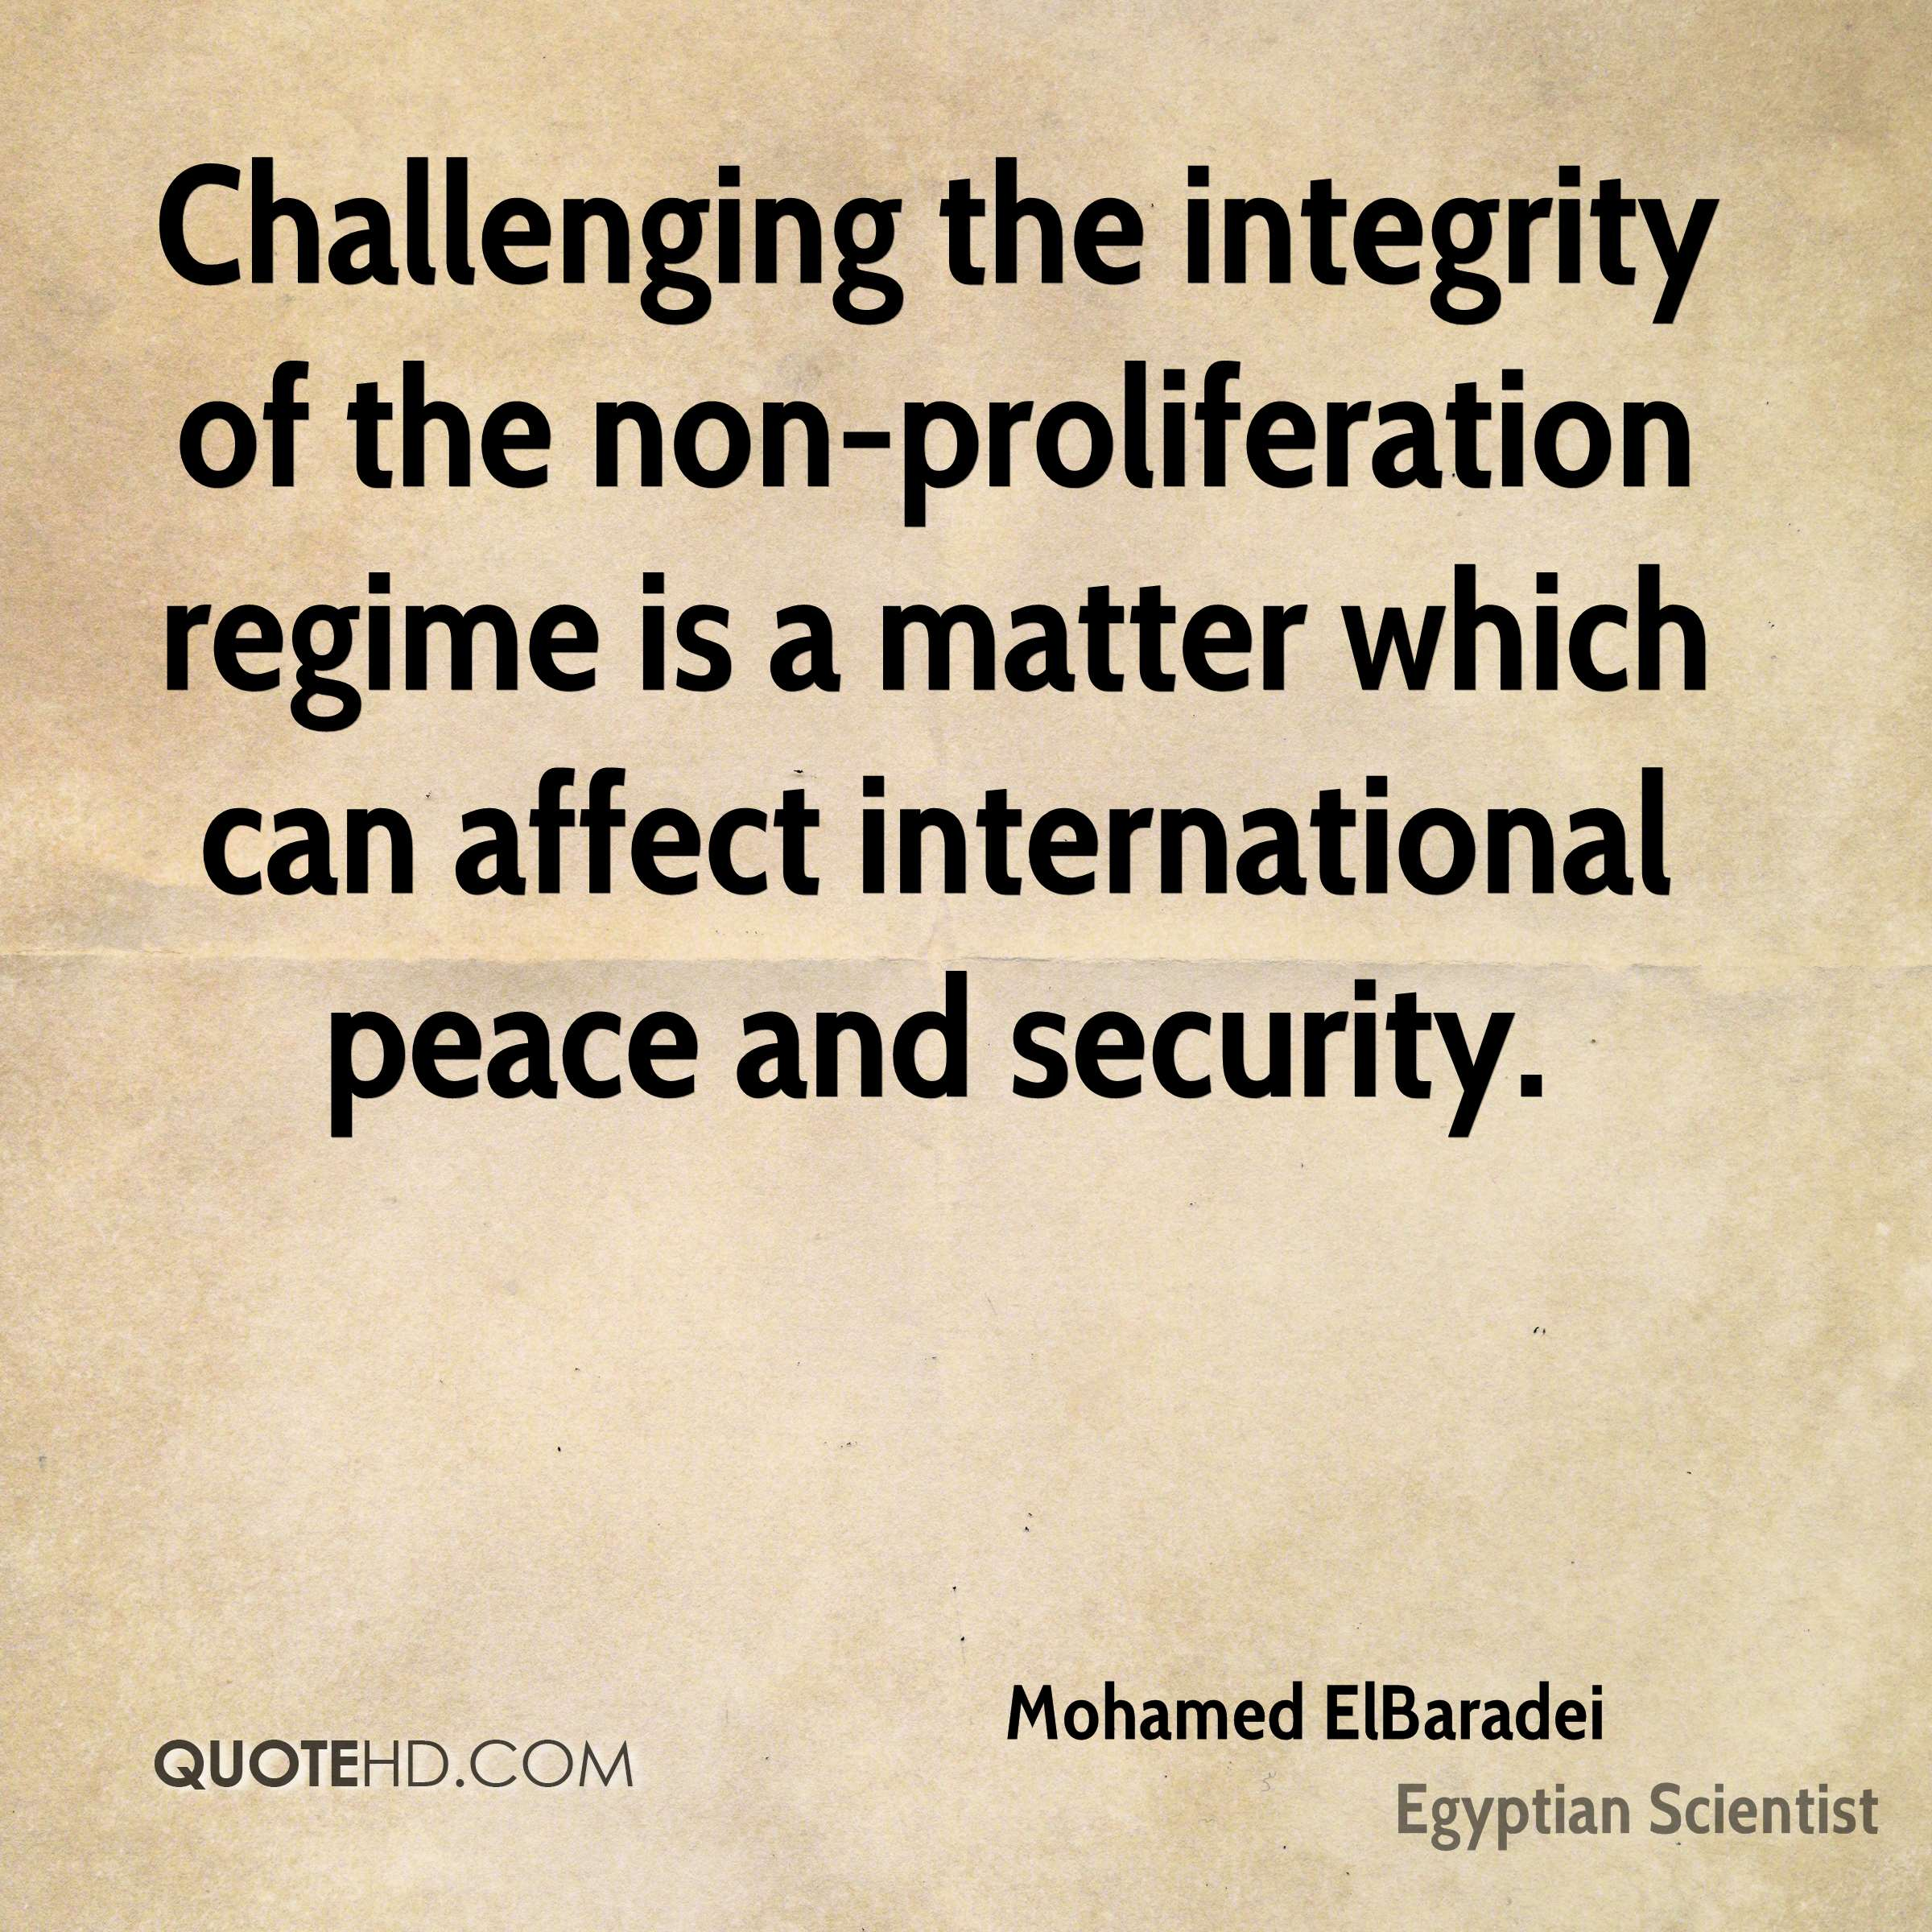 Challenging the integrity of the non-proliferation regime is a matter which can affect international peace and security.